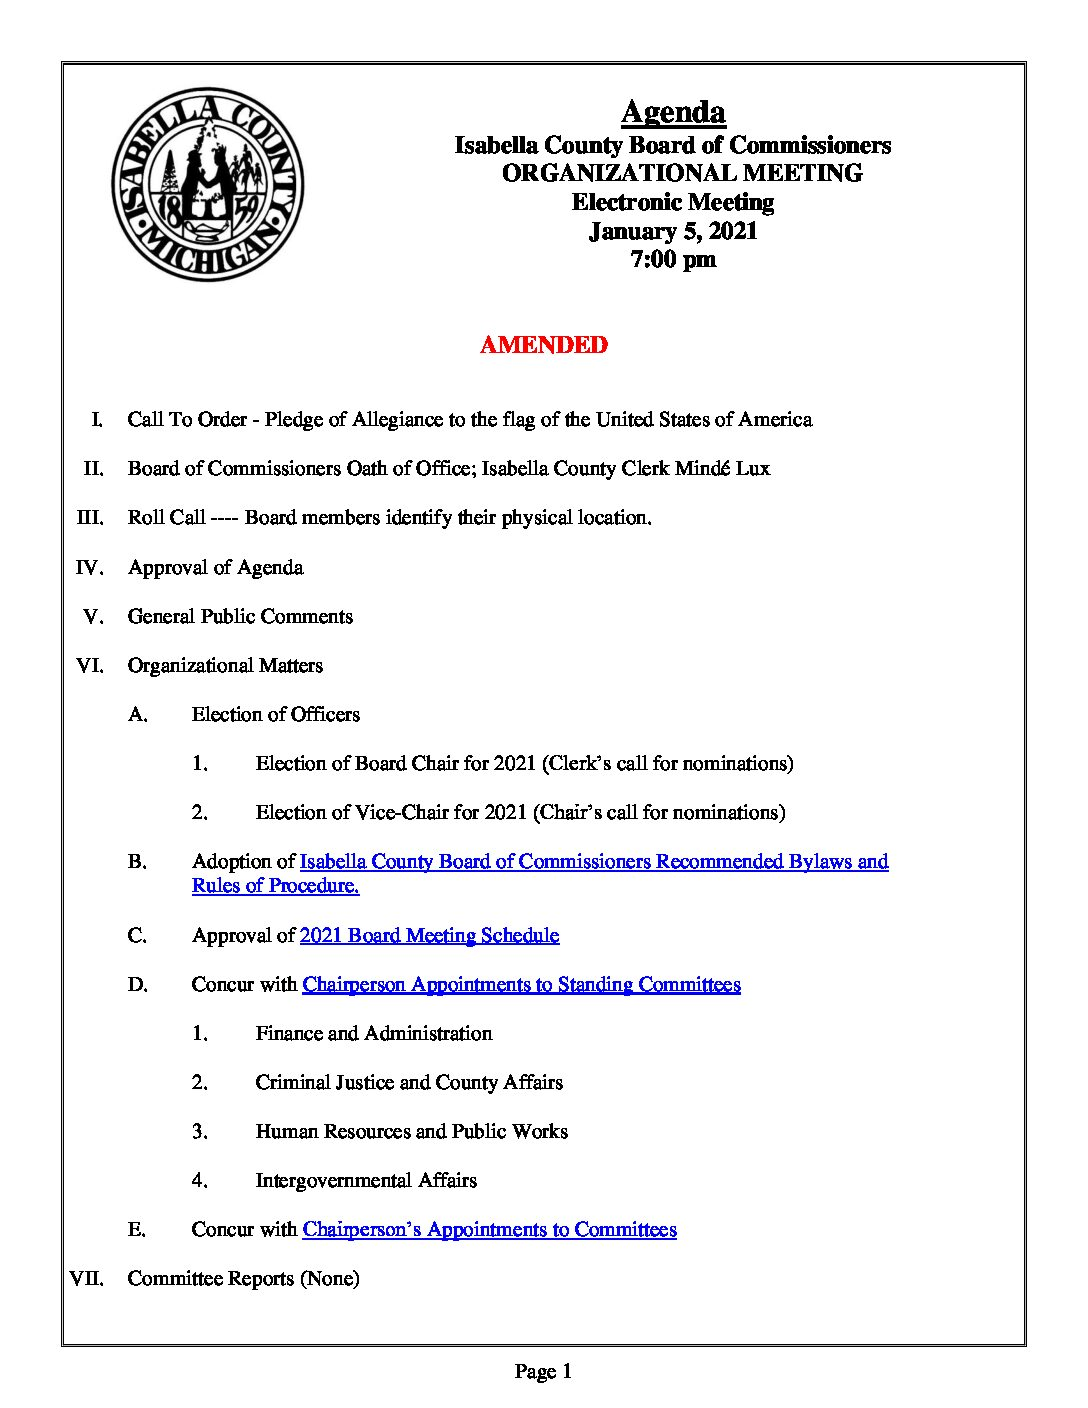 preview image of first page January 5, 2021 Organizational Meeting Agenda